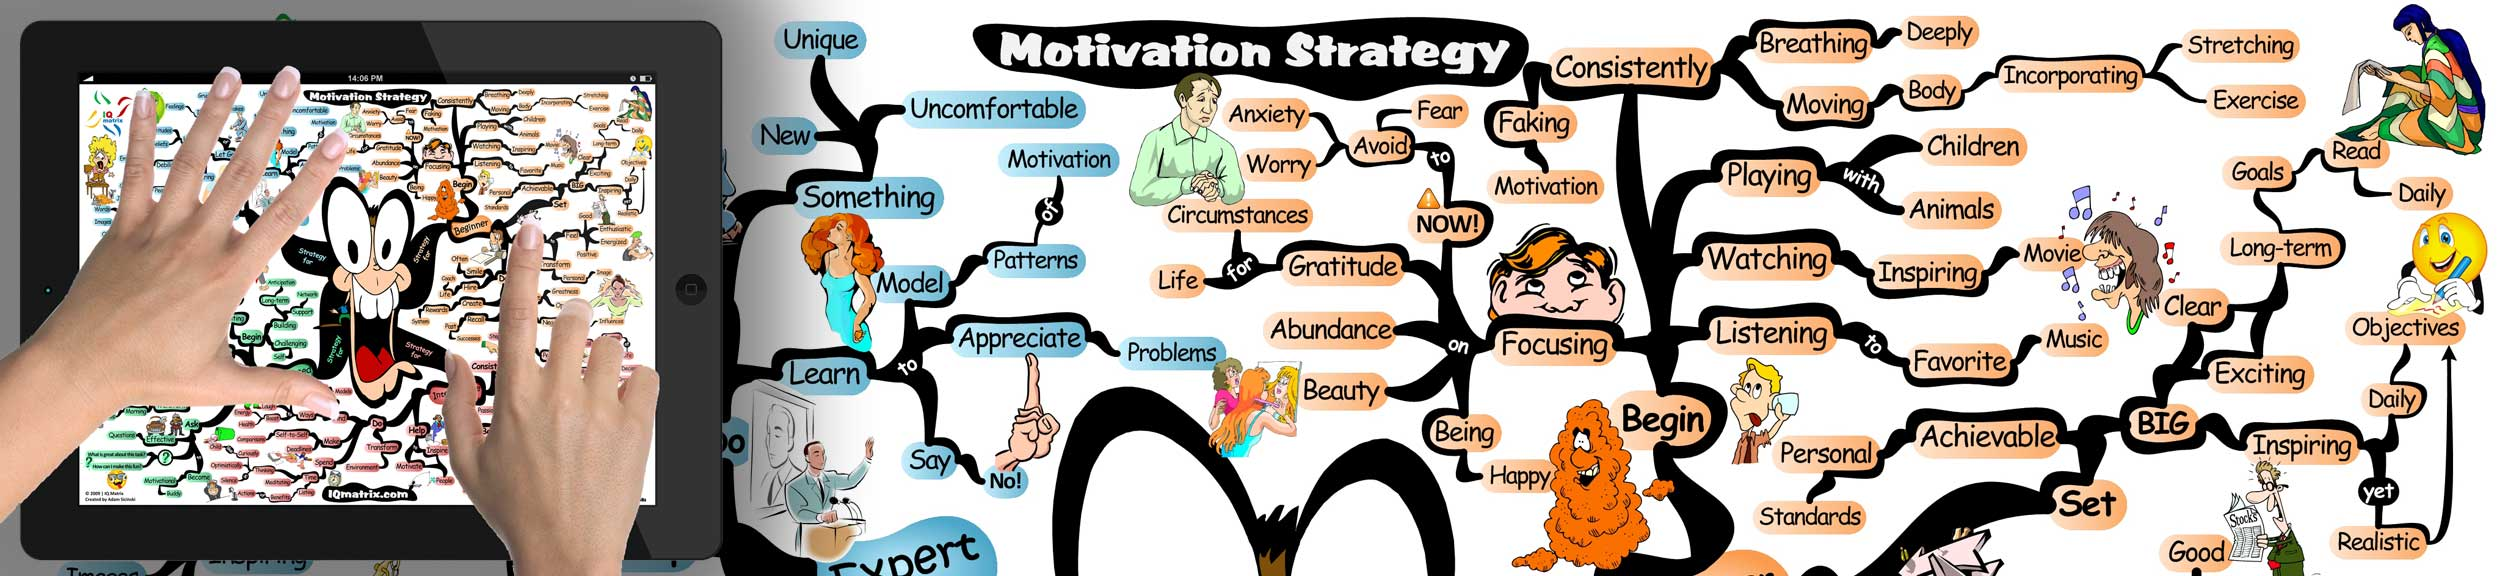 70+ Ideas for Developing Unstoppable Motivation in Pursuit of Your.